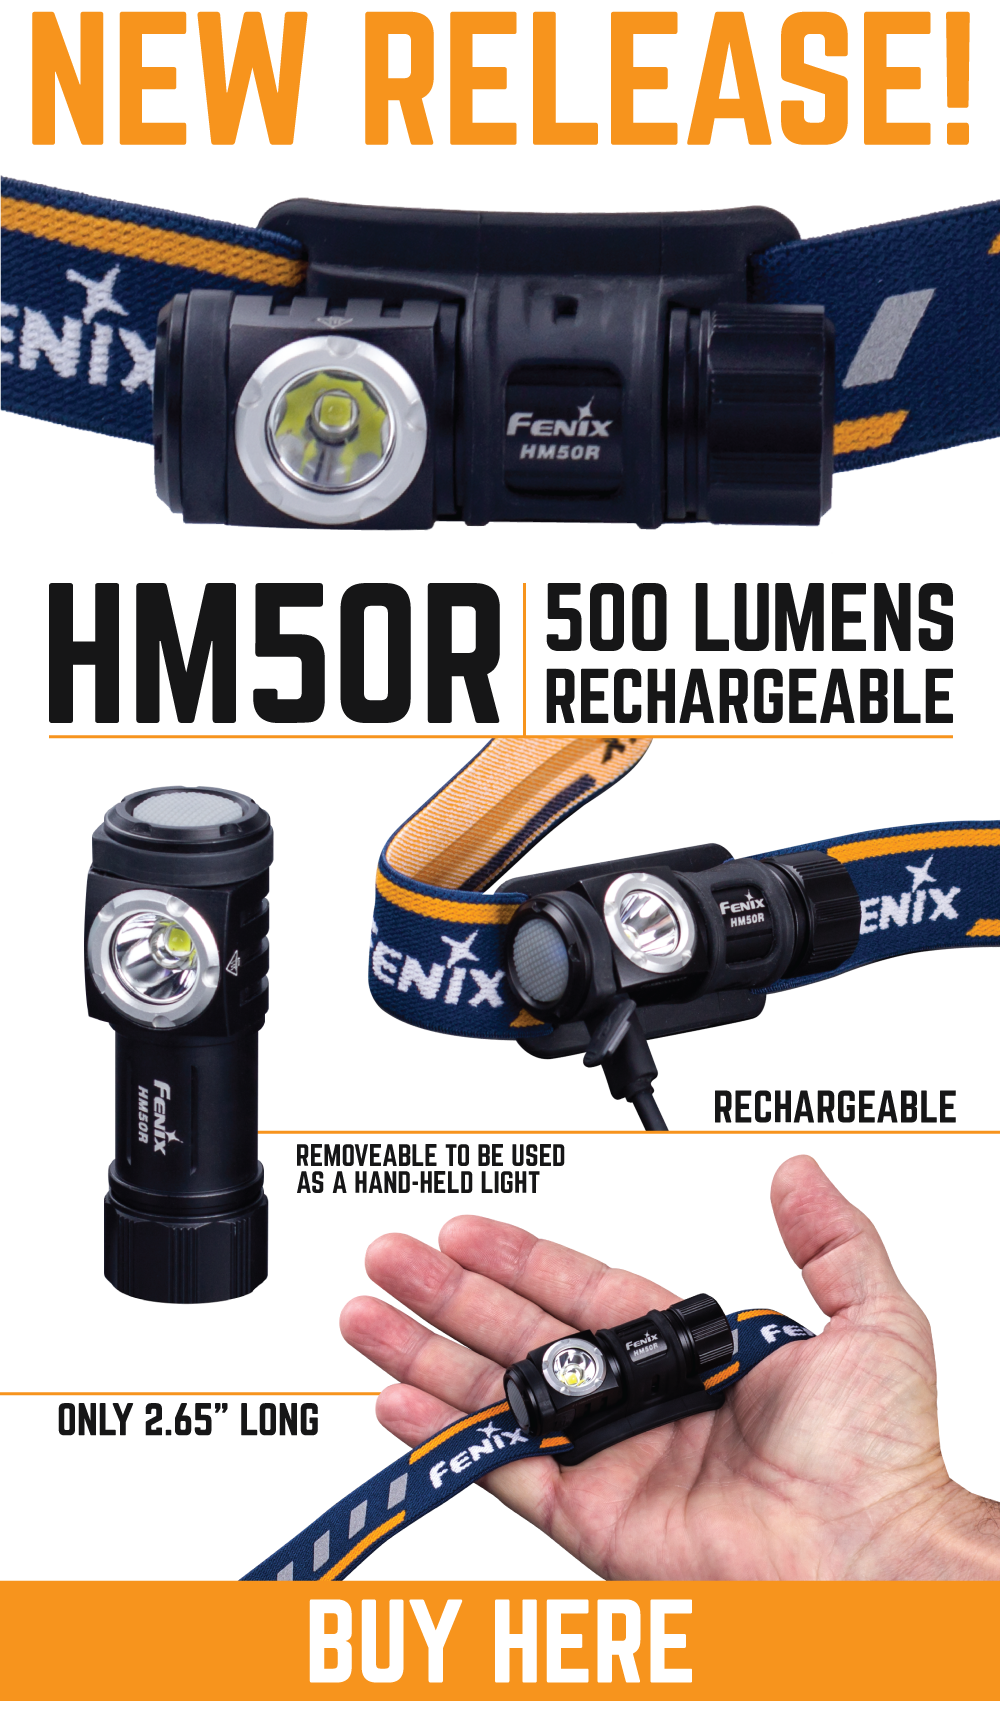 Fenix HM50R, Fenix LED Rechargeable Headlamp, 500 Lumen Headlamp, Buy Headlamp torch online in India